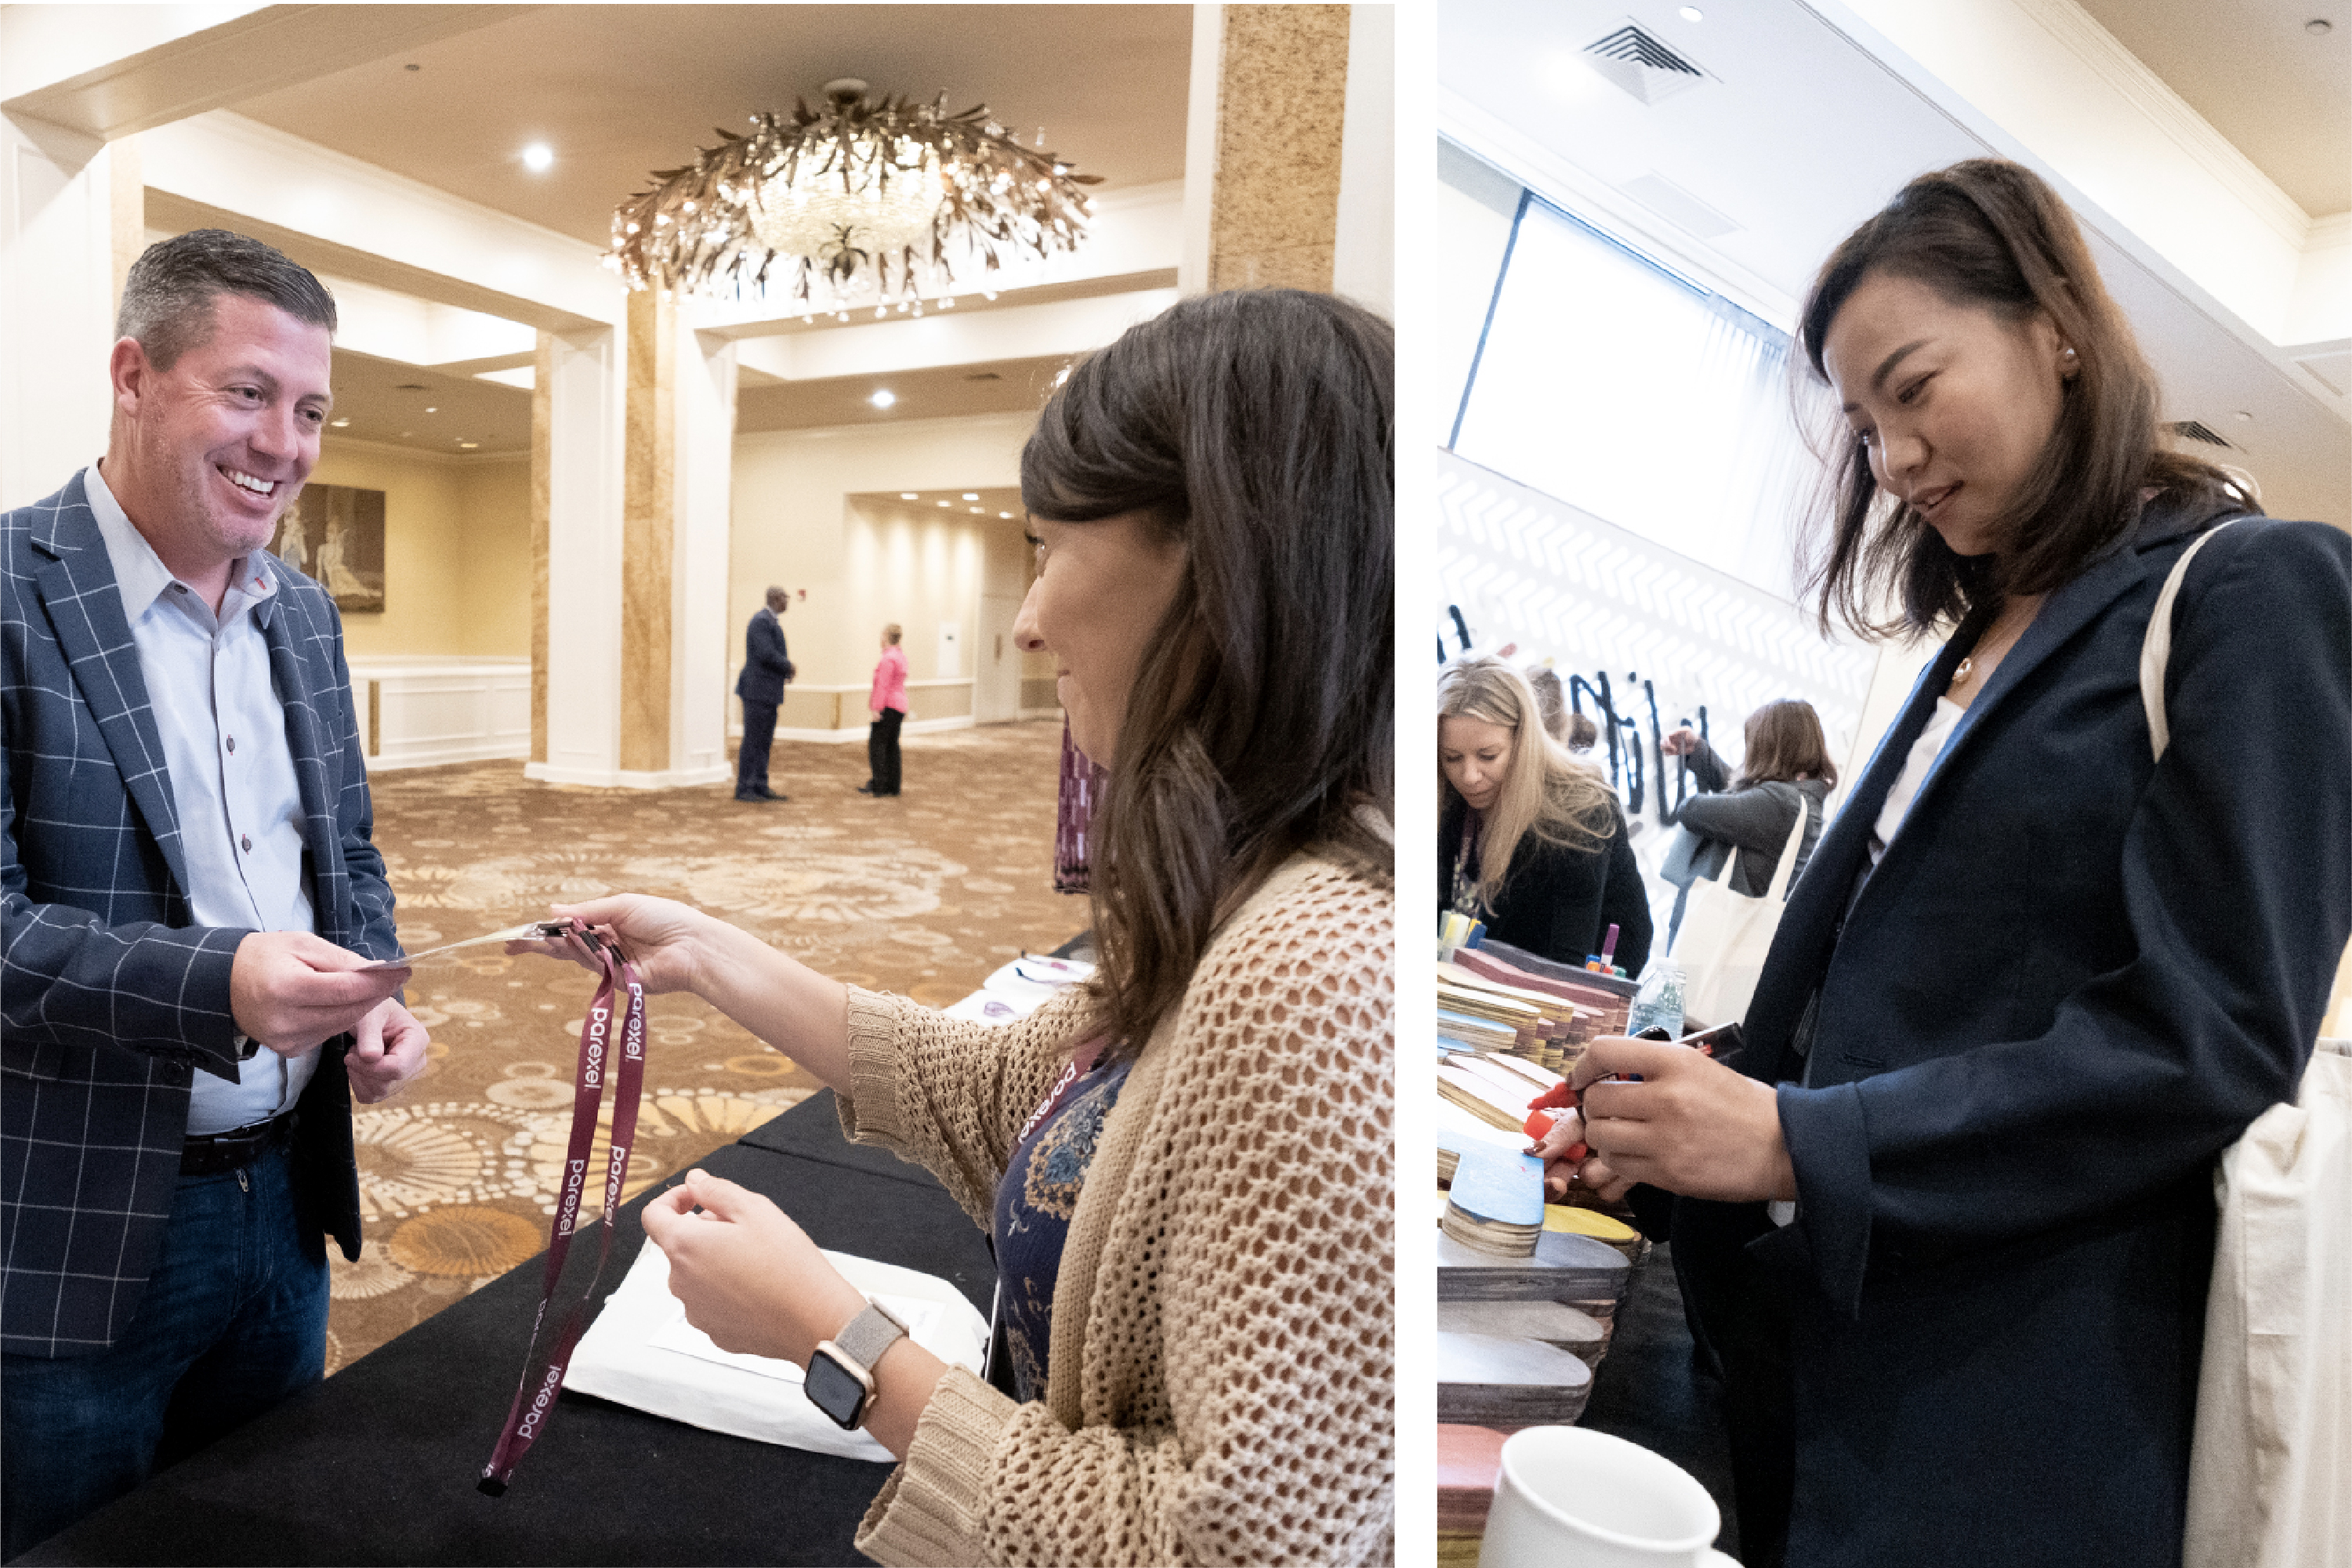 Parexel Global Leadership and Sales Summit Event Registration and Attendees